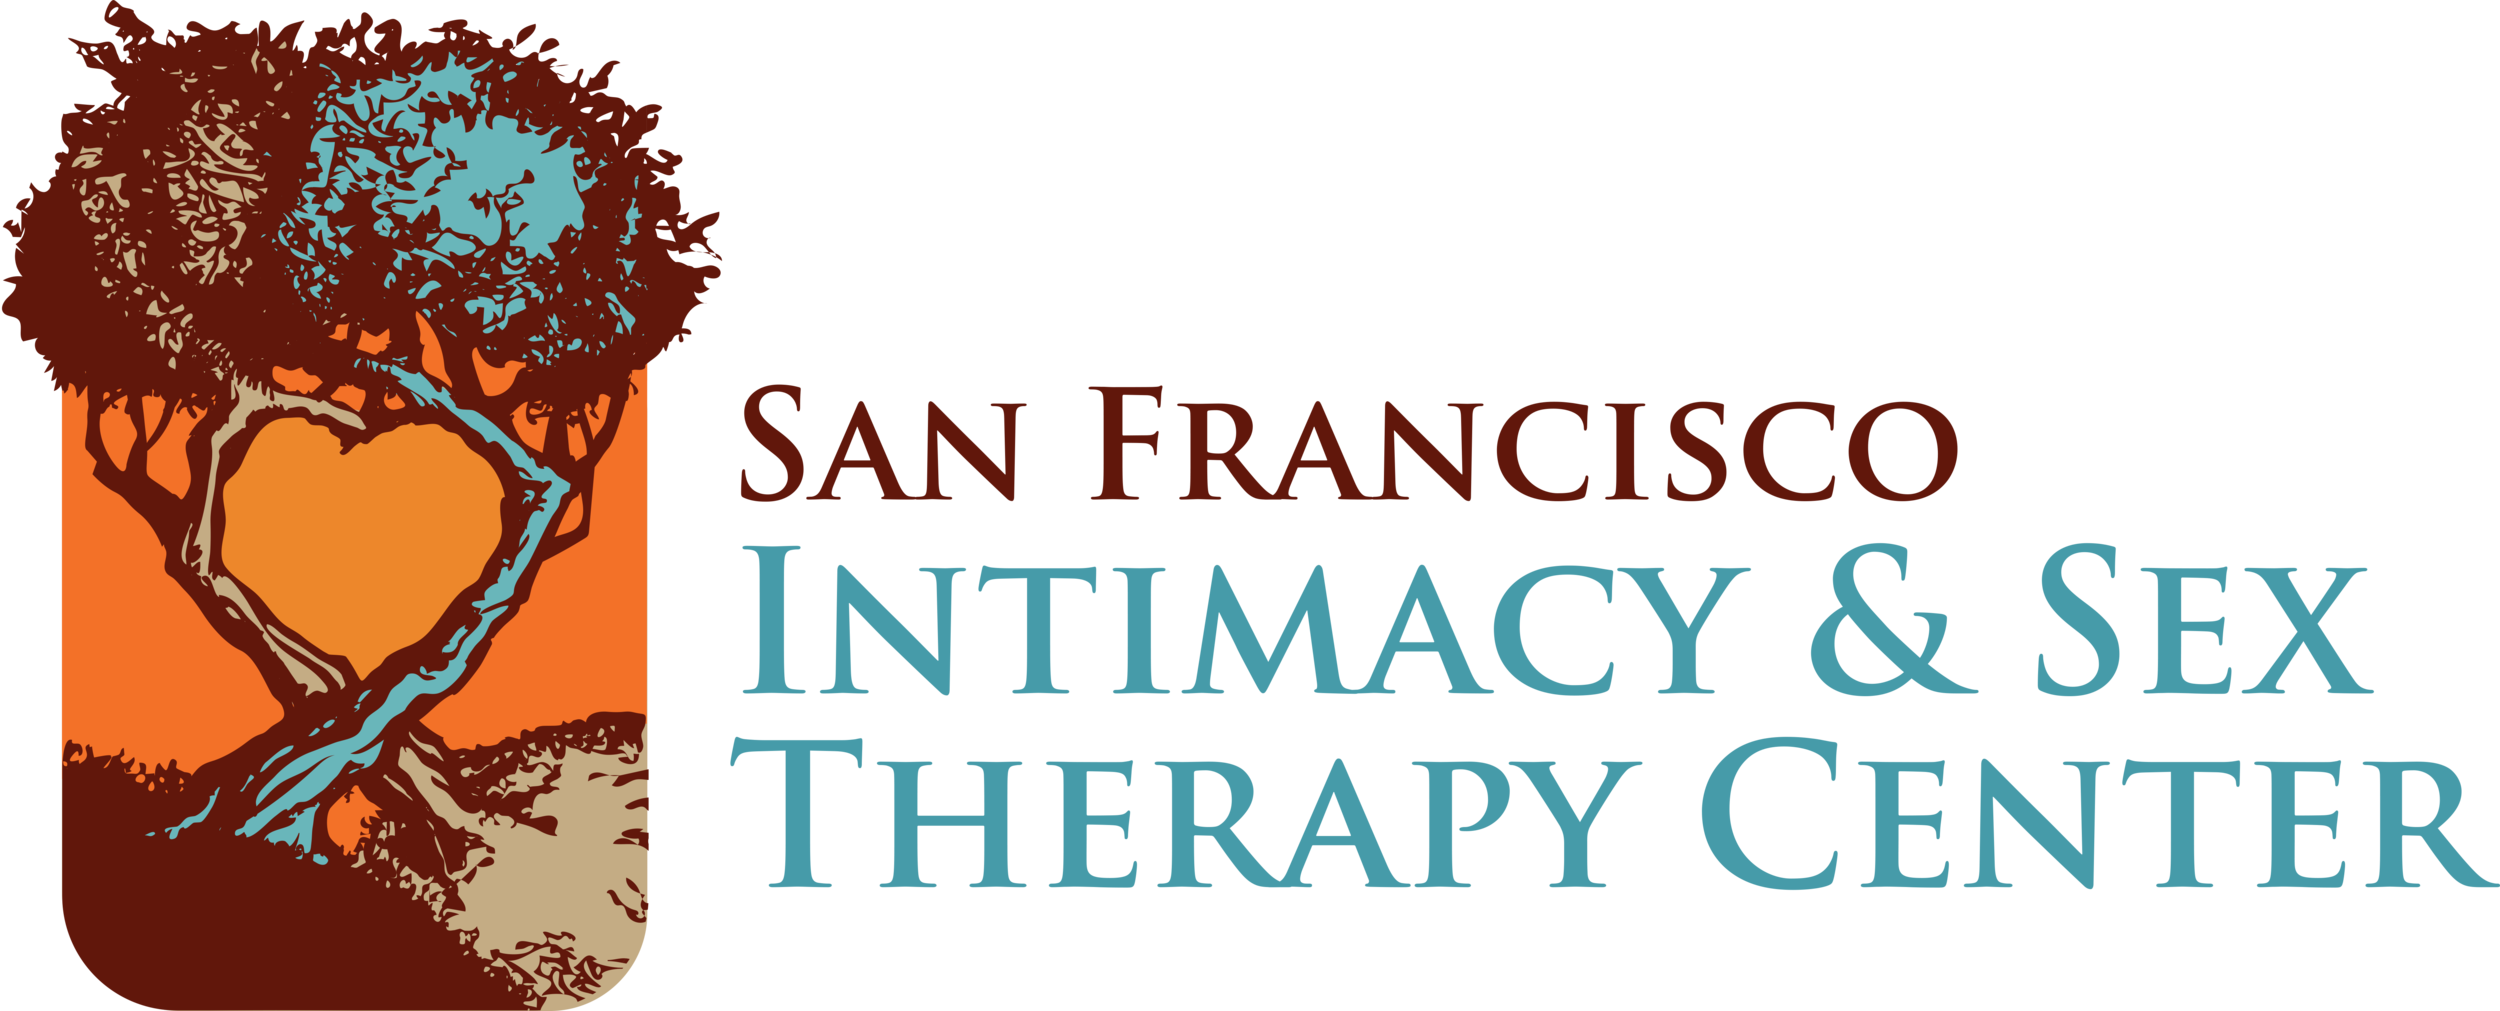 We are Proud to Welcome  - our sister clinic, The San Francisco Intimacy & Sex Therapy Center, which is a highly specialized SF Bay Area therapy center designed to promote healthy intimacy and sexual expression without shame or stigma.